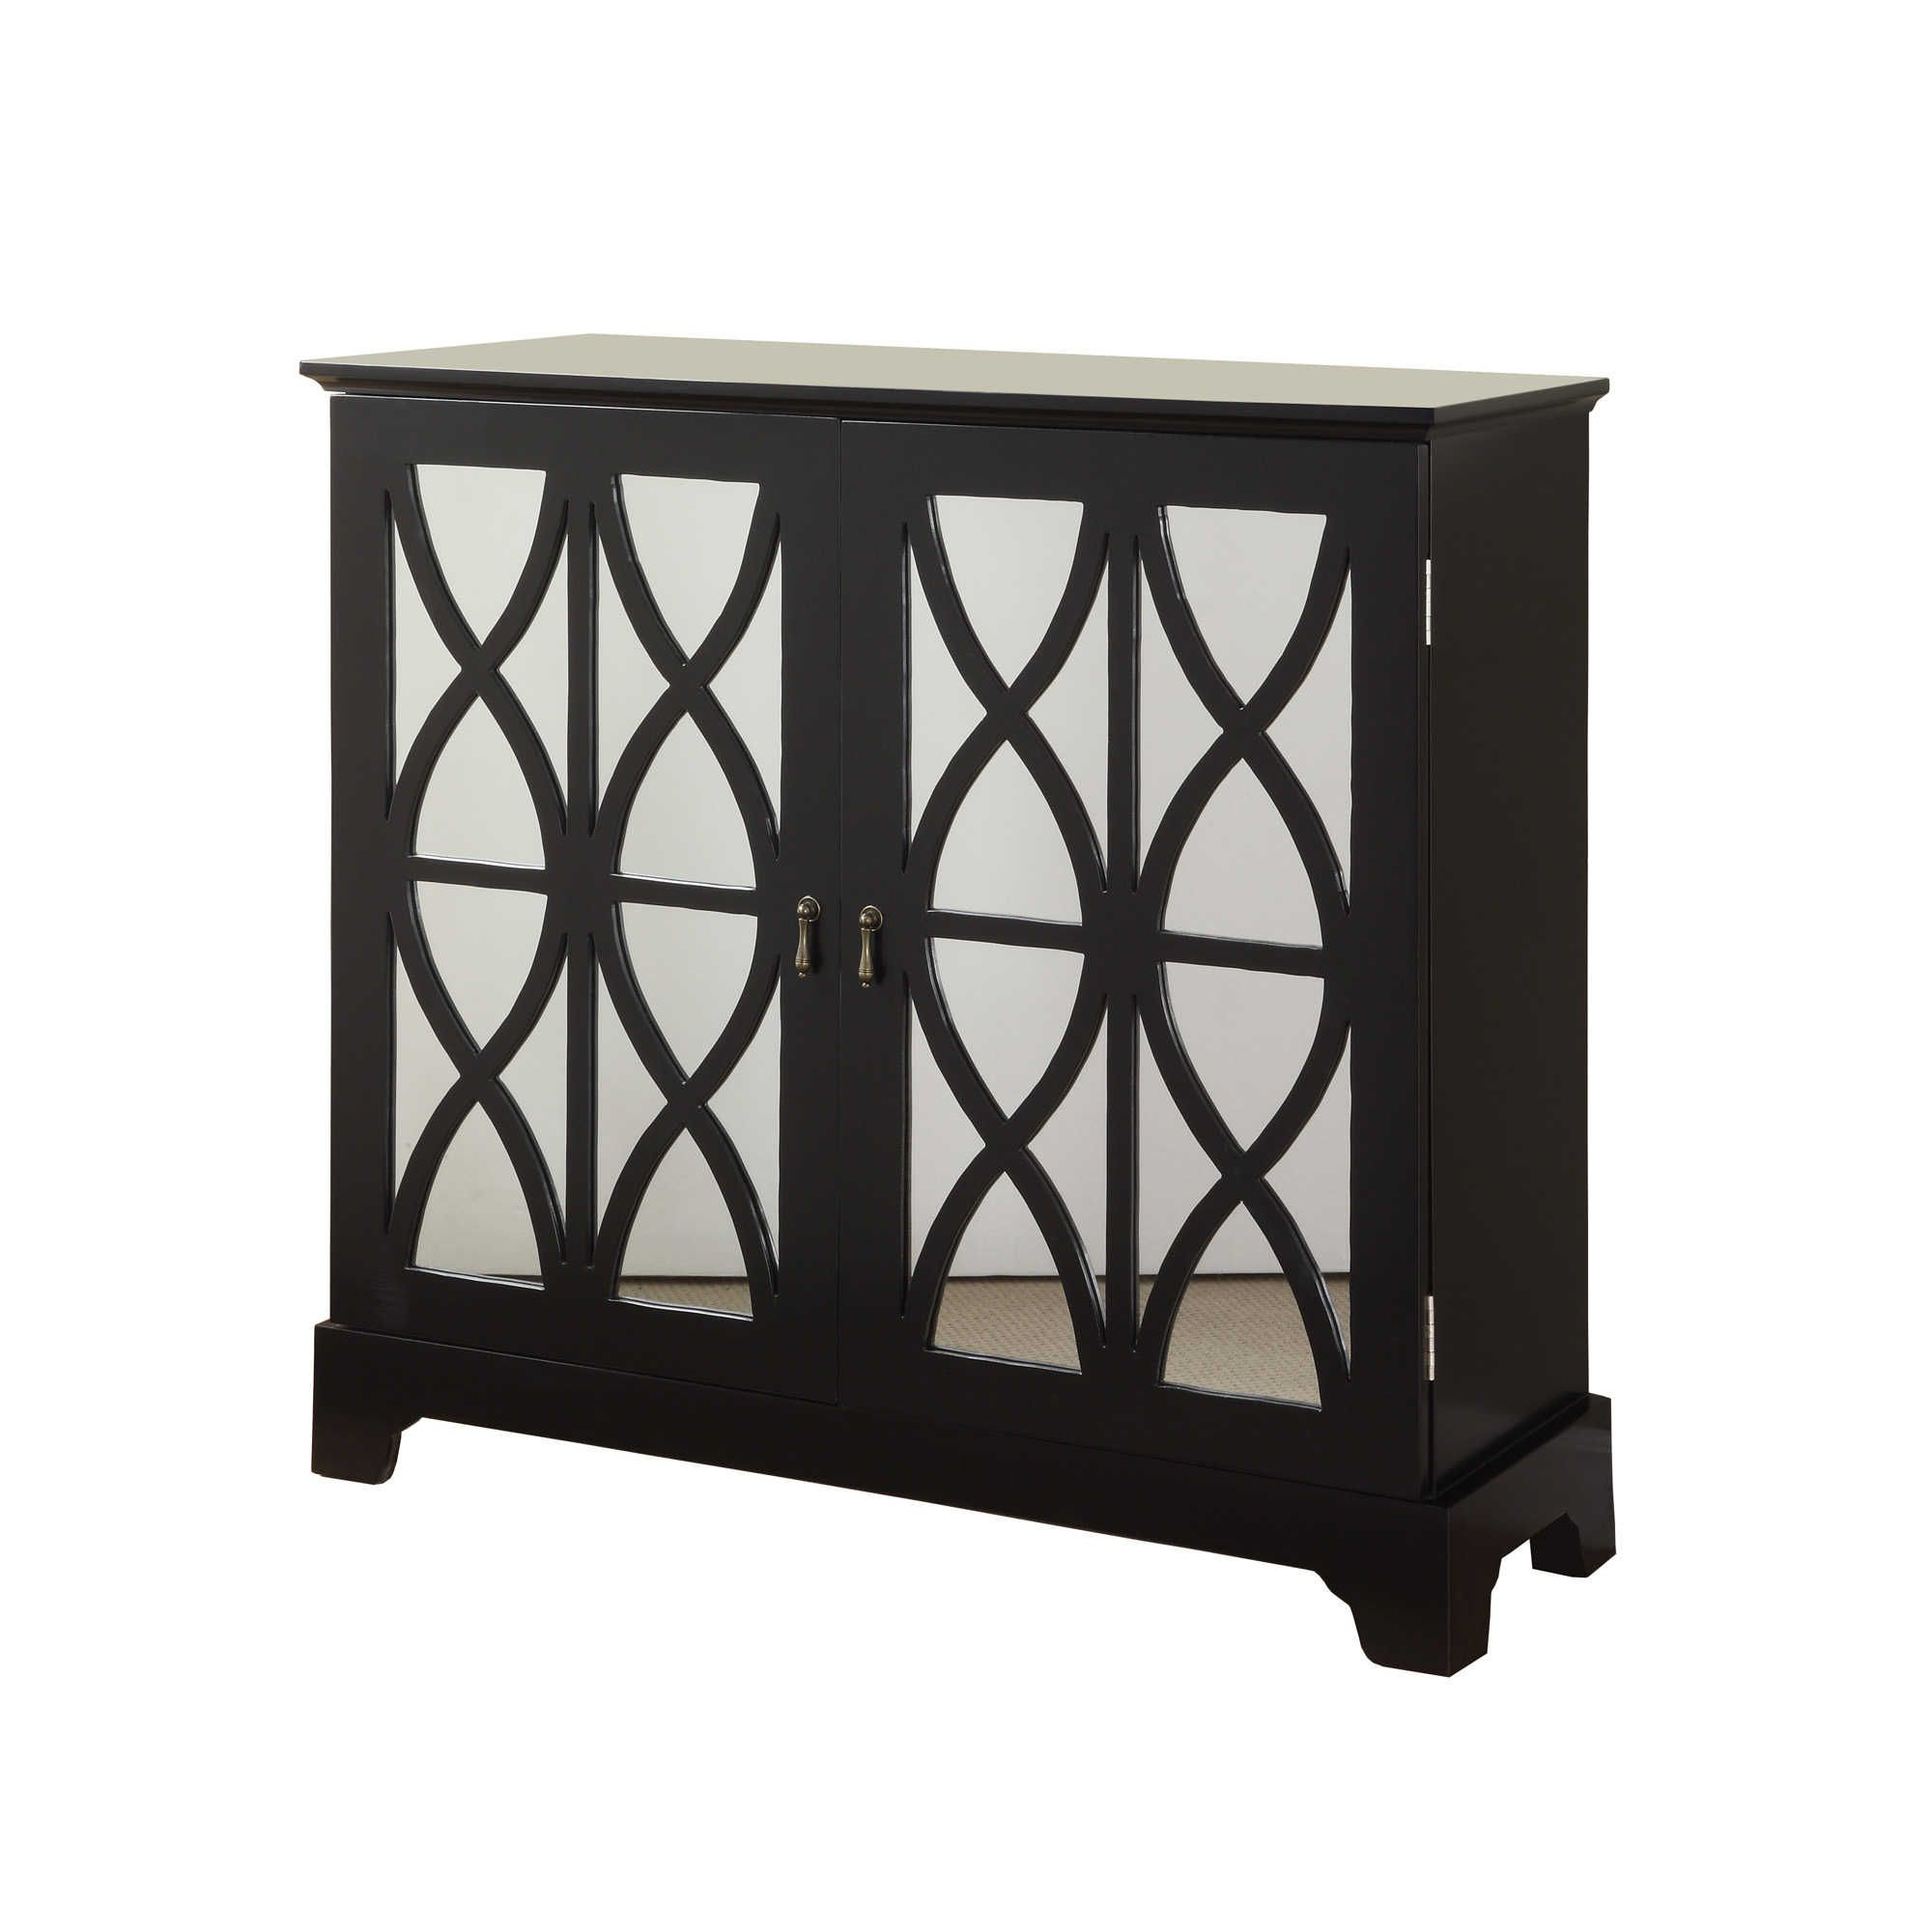 Nice Two Door Mirrored Cabinet. Product: Console Cabinet Construction Material:  Wood And Mirrored GlassColor: Black Features: Glass Mirrored Doors With  Curved ...